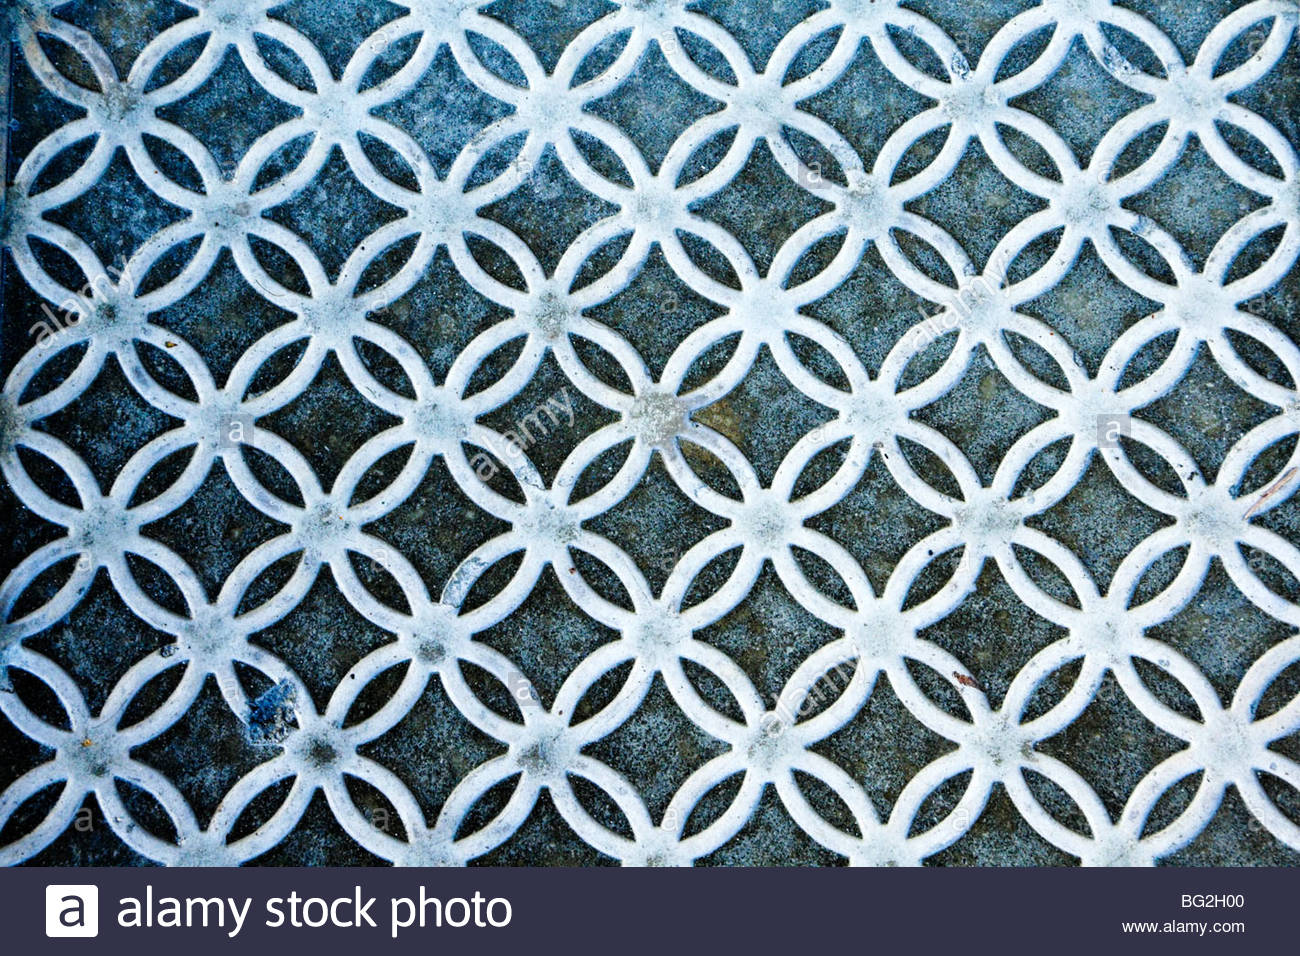 Tile Patterns Stock Photos & Tile Patterns Stock Images - Alamy